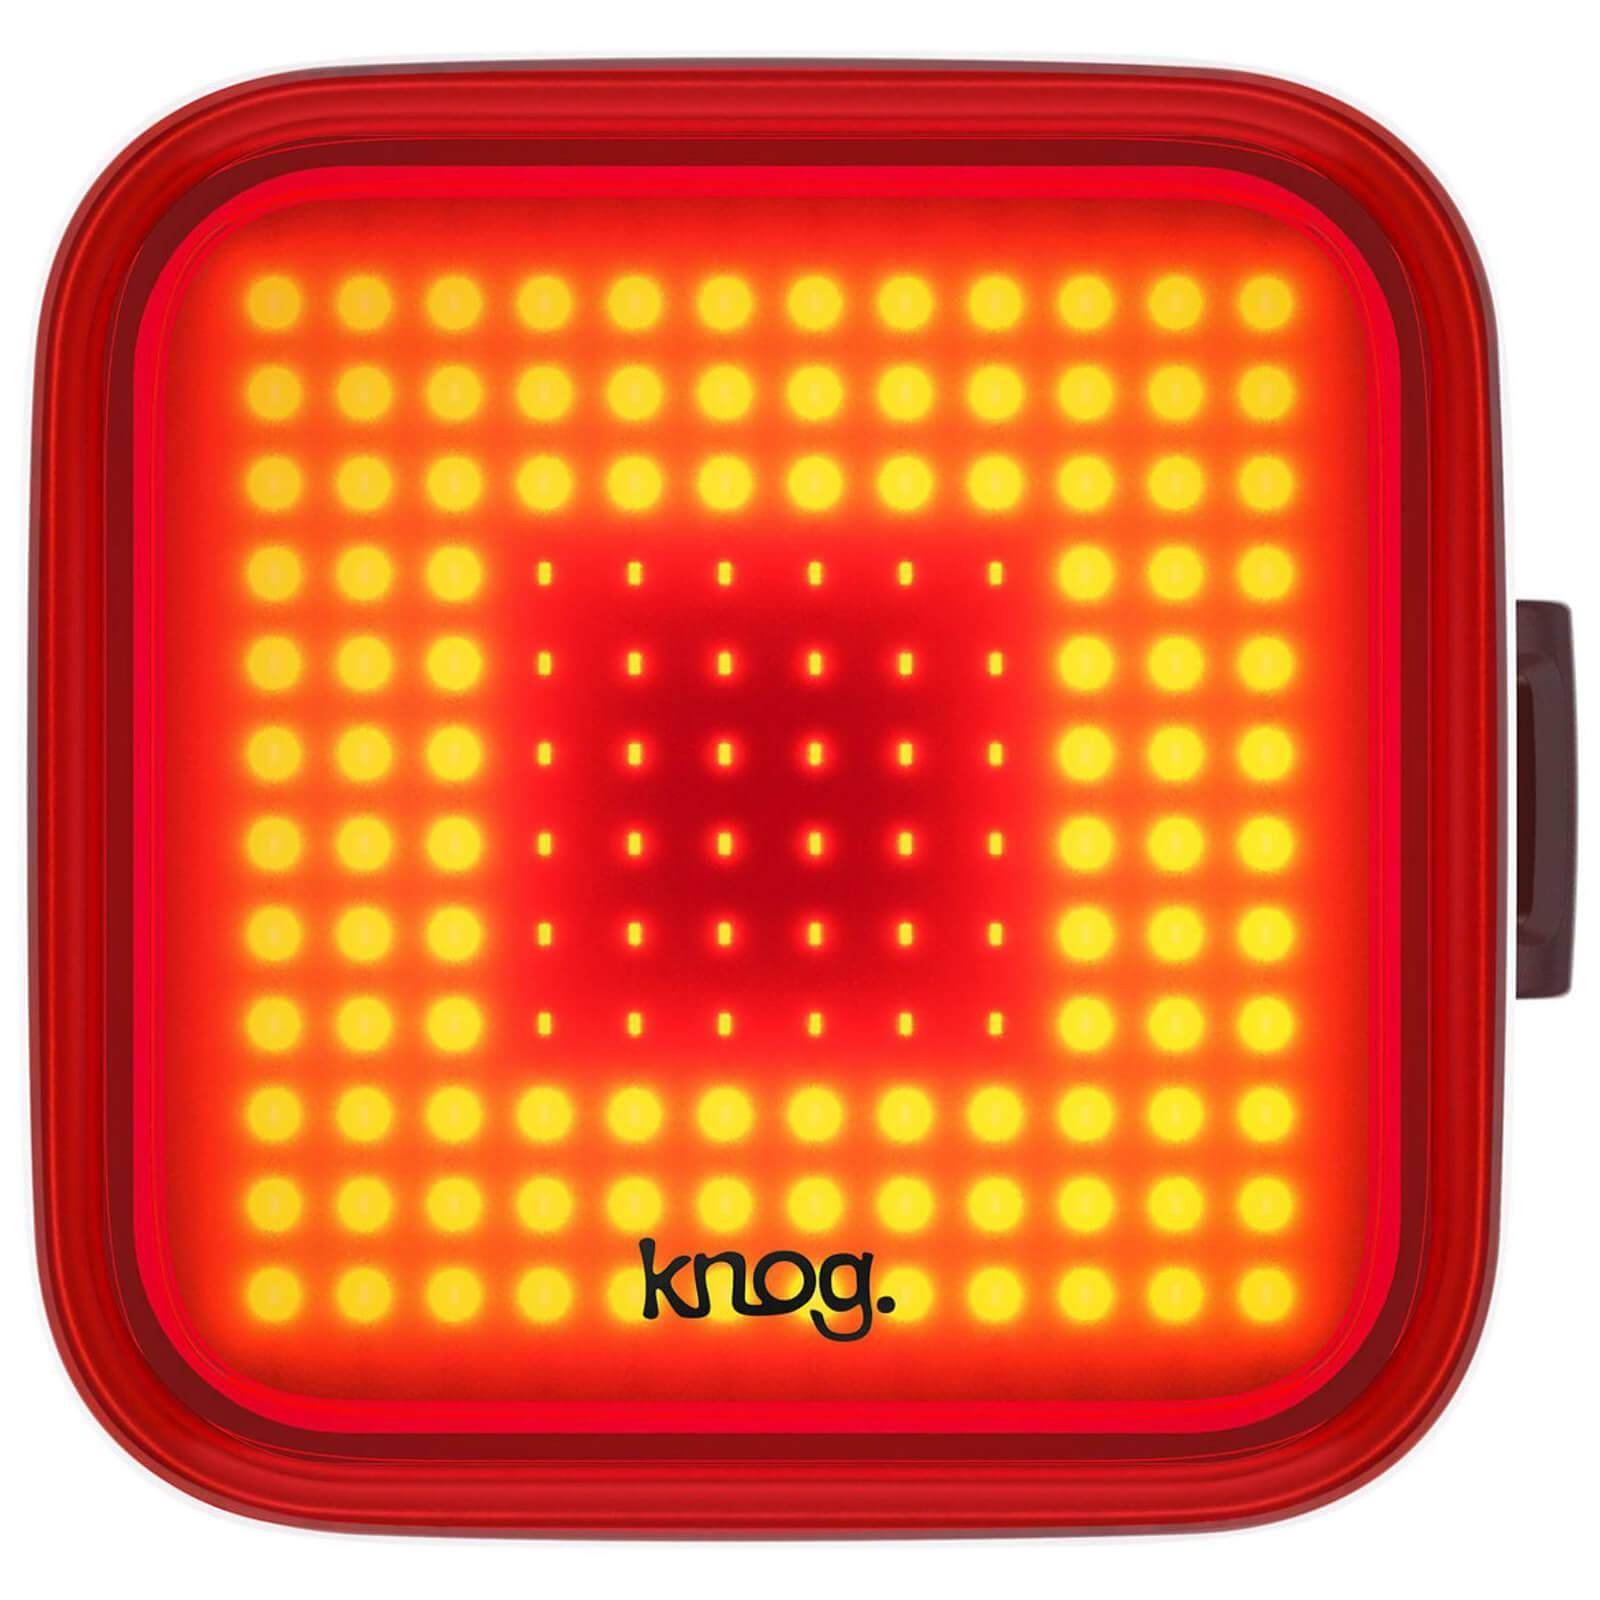 Knog Blinder Rear Light - Square - Black;